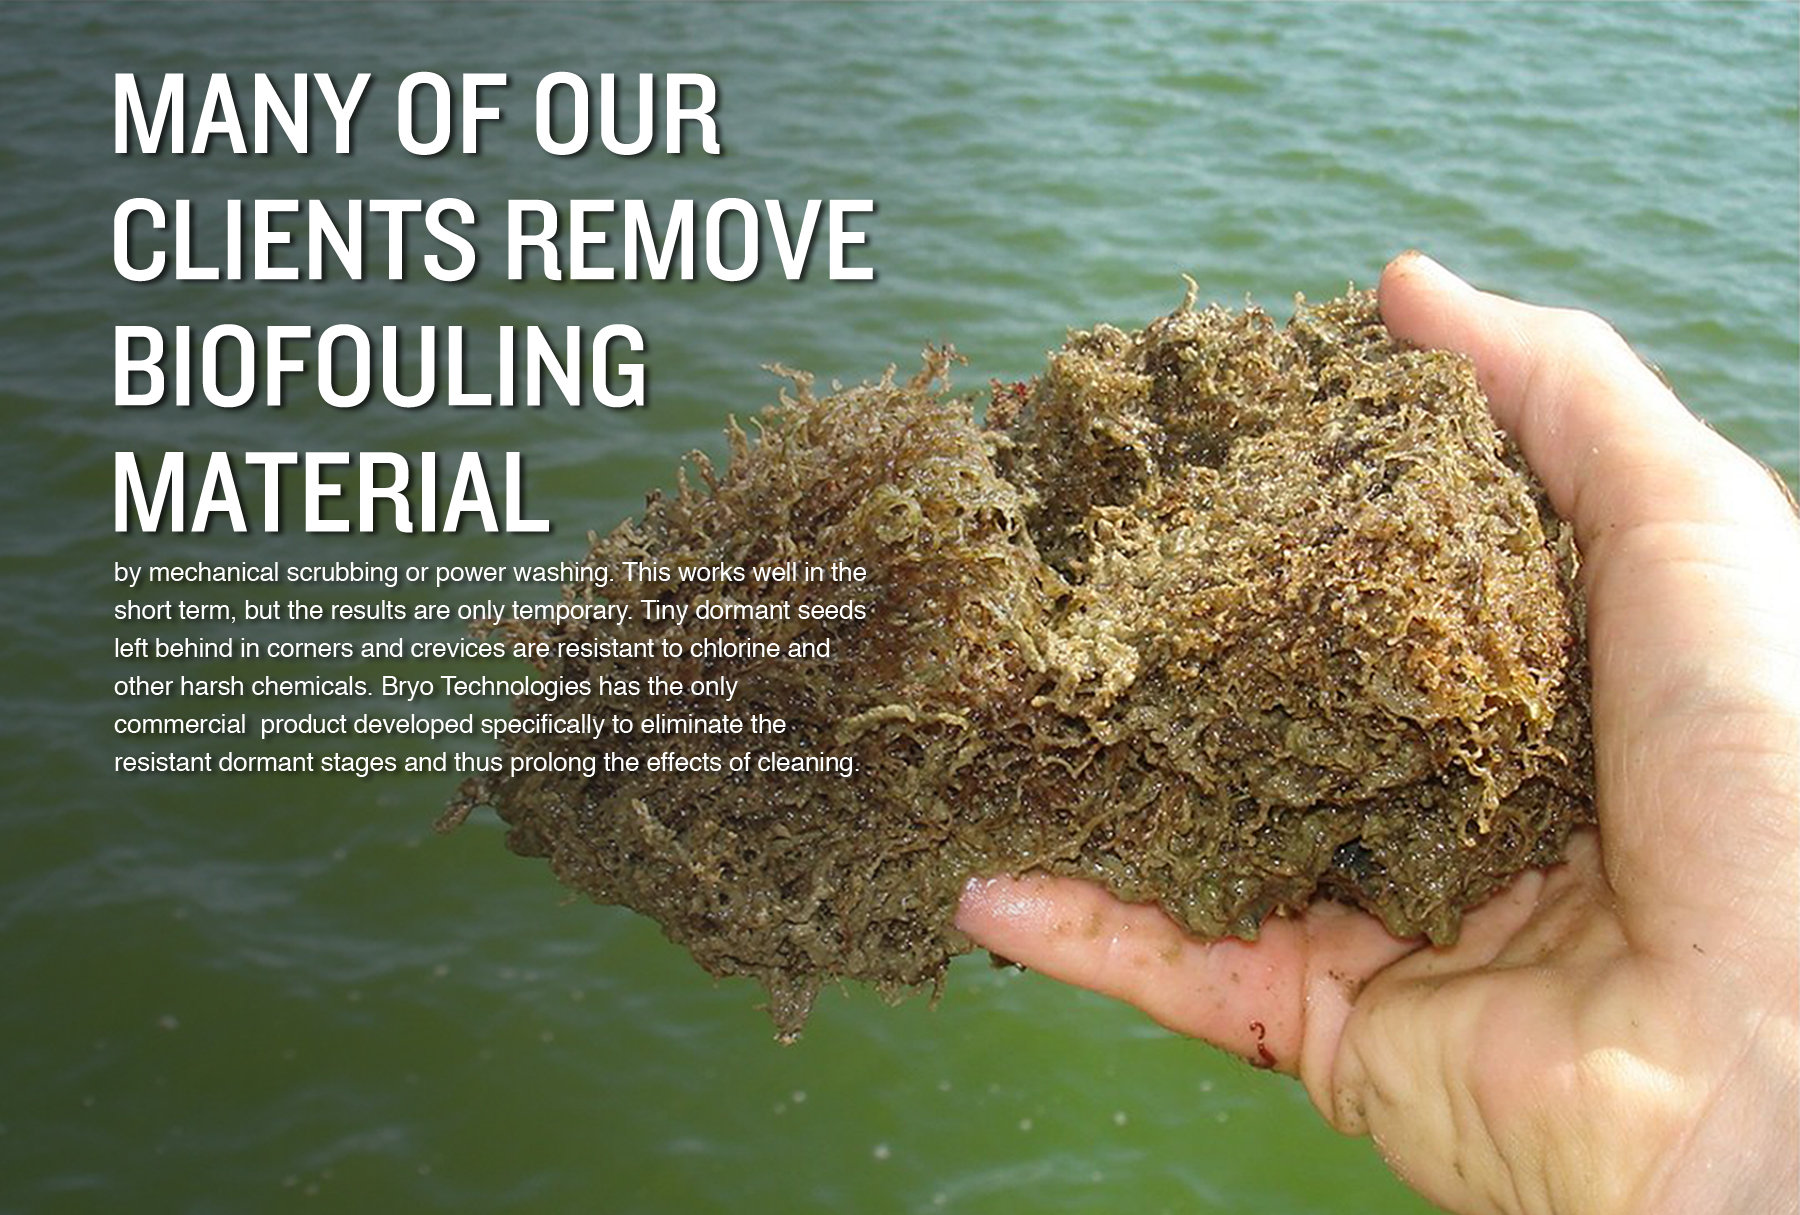 Bryo Technologies Wastewater: Many of our clients remove biofouling material by mechanical scrubbing or power washing. This works well in the short term, but the results are only temporary. Tiny dormant seeds left behind in corners and crevices are resistant to chlorine and other harsh chemicals. Bryo Technologies has the only commercial  product developed specifically to eliminate the resistant dormant stages and thus prolong the effects of cleaning.